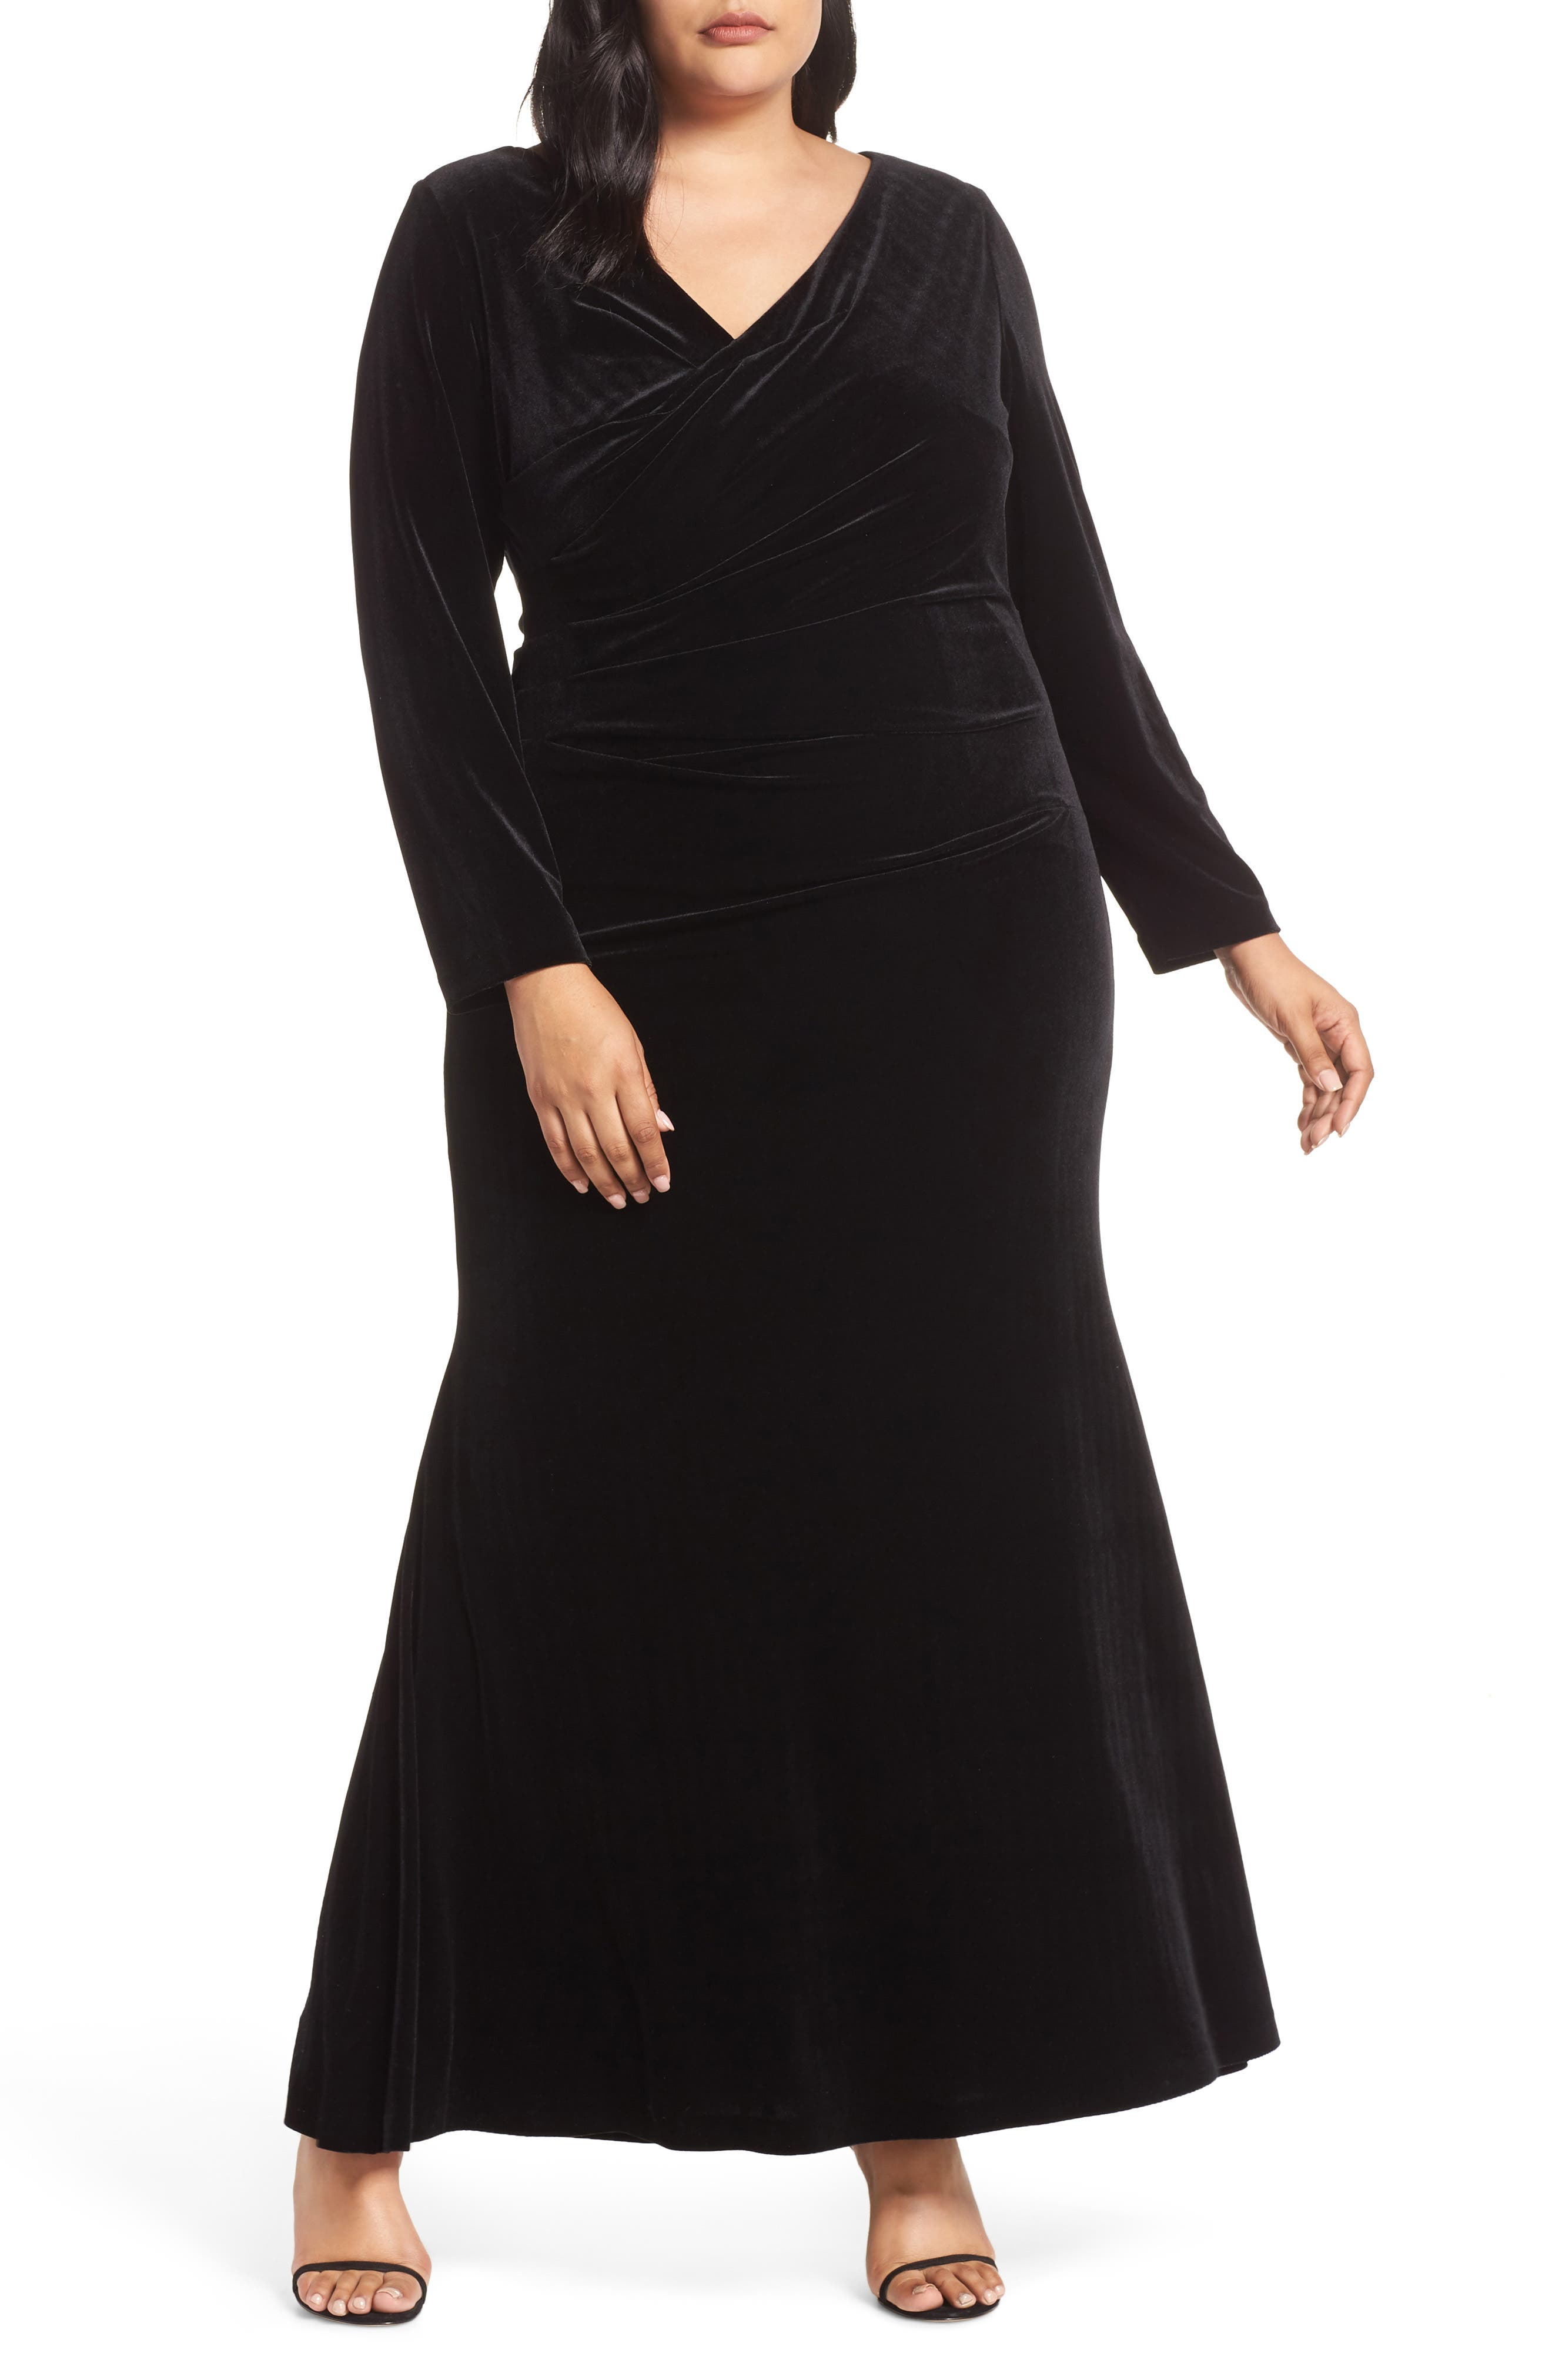 1940s Evening, Prom, Party, Formal, Ball Gowns Plus Size Womens Vince Camuto Side Ruched Gown $228.00 AT vintagedancer.com